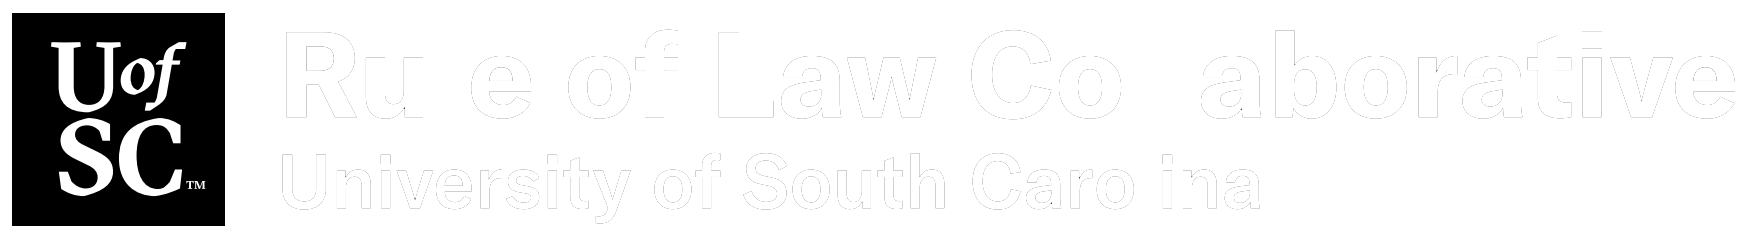 Rule of Law Collaborative